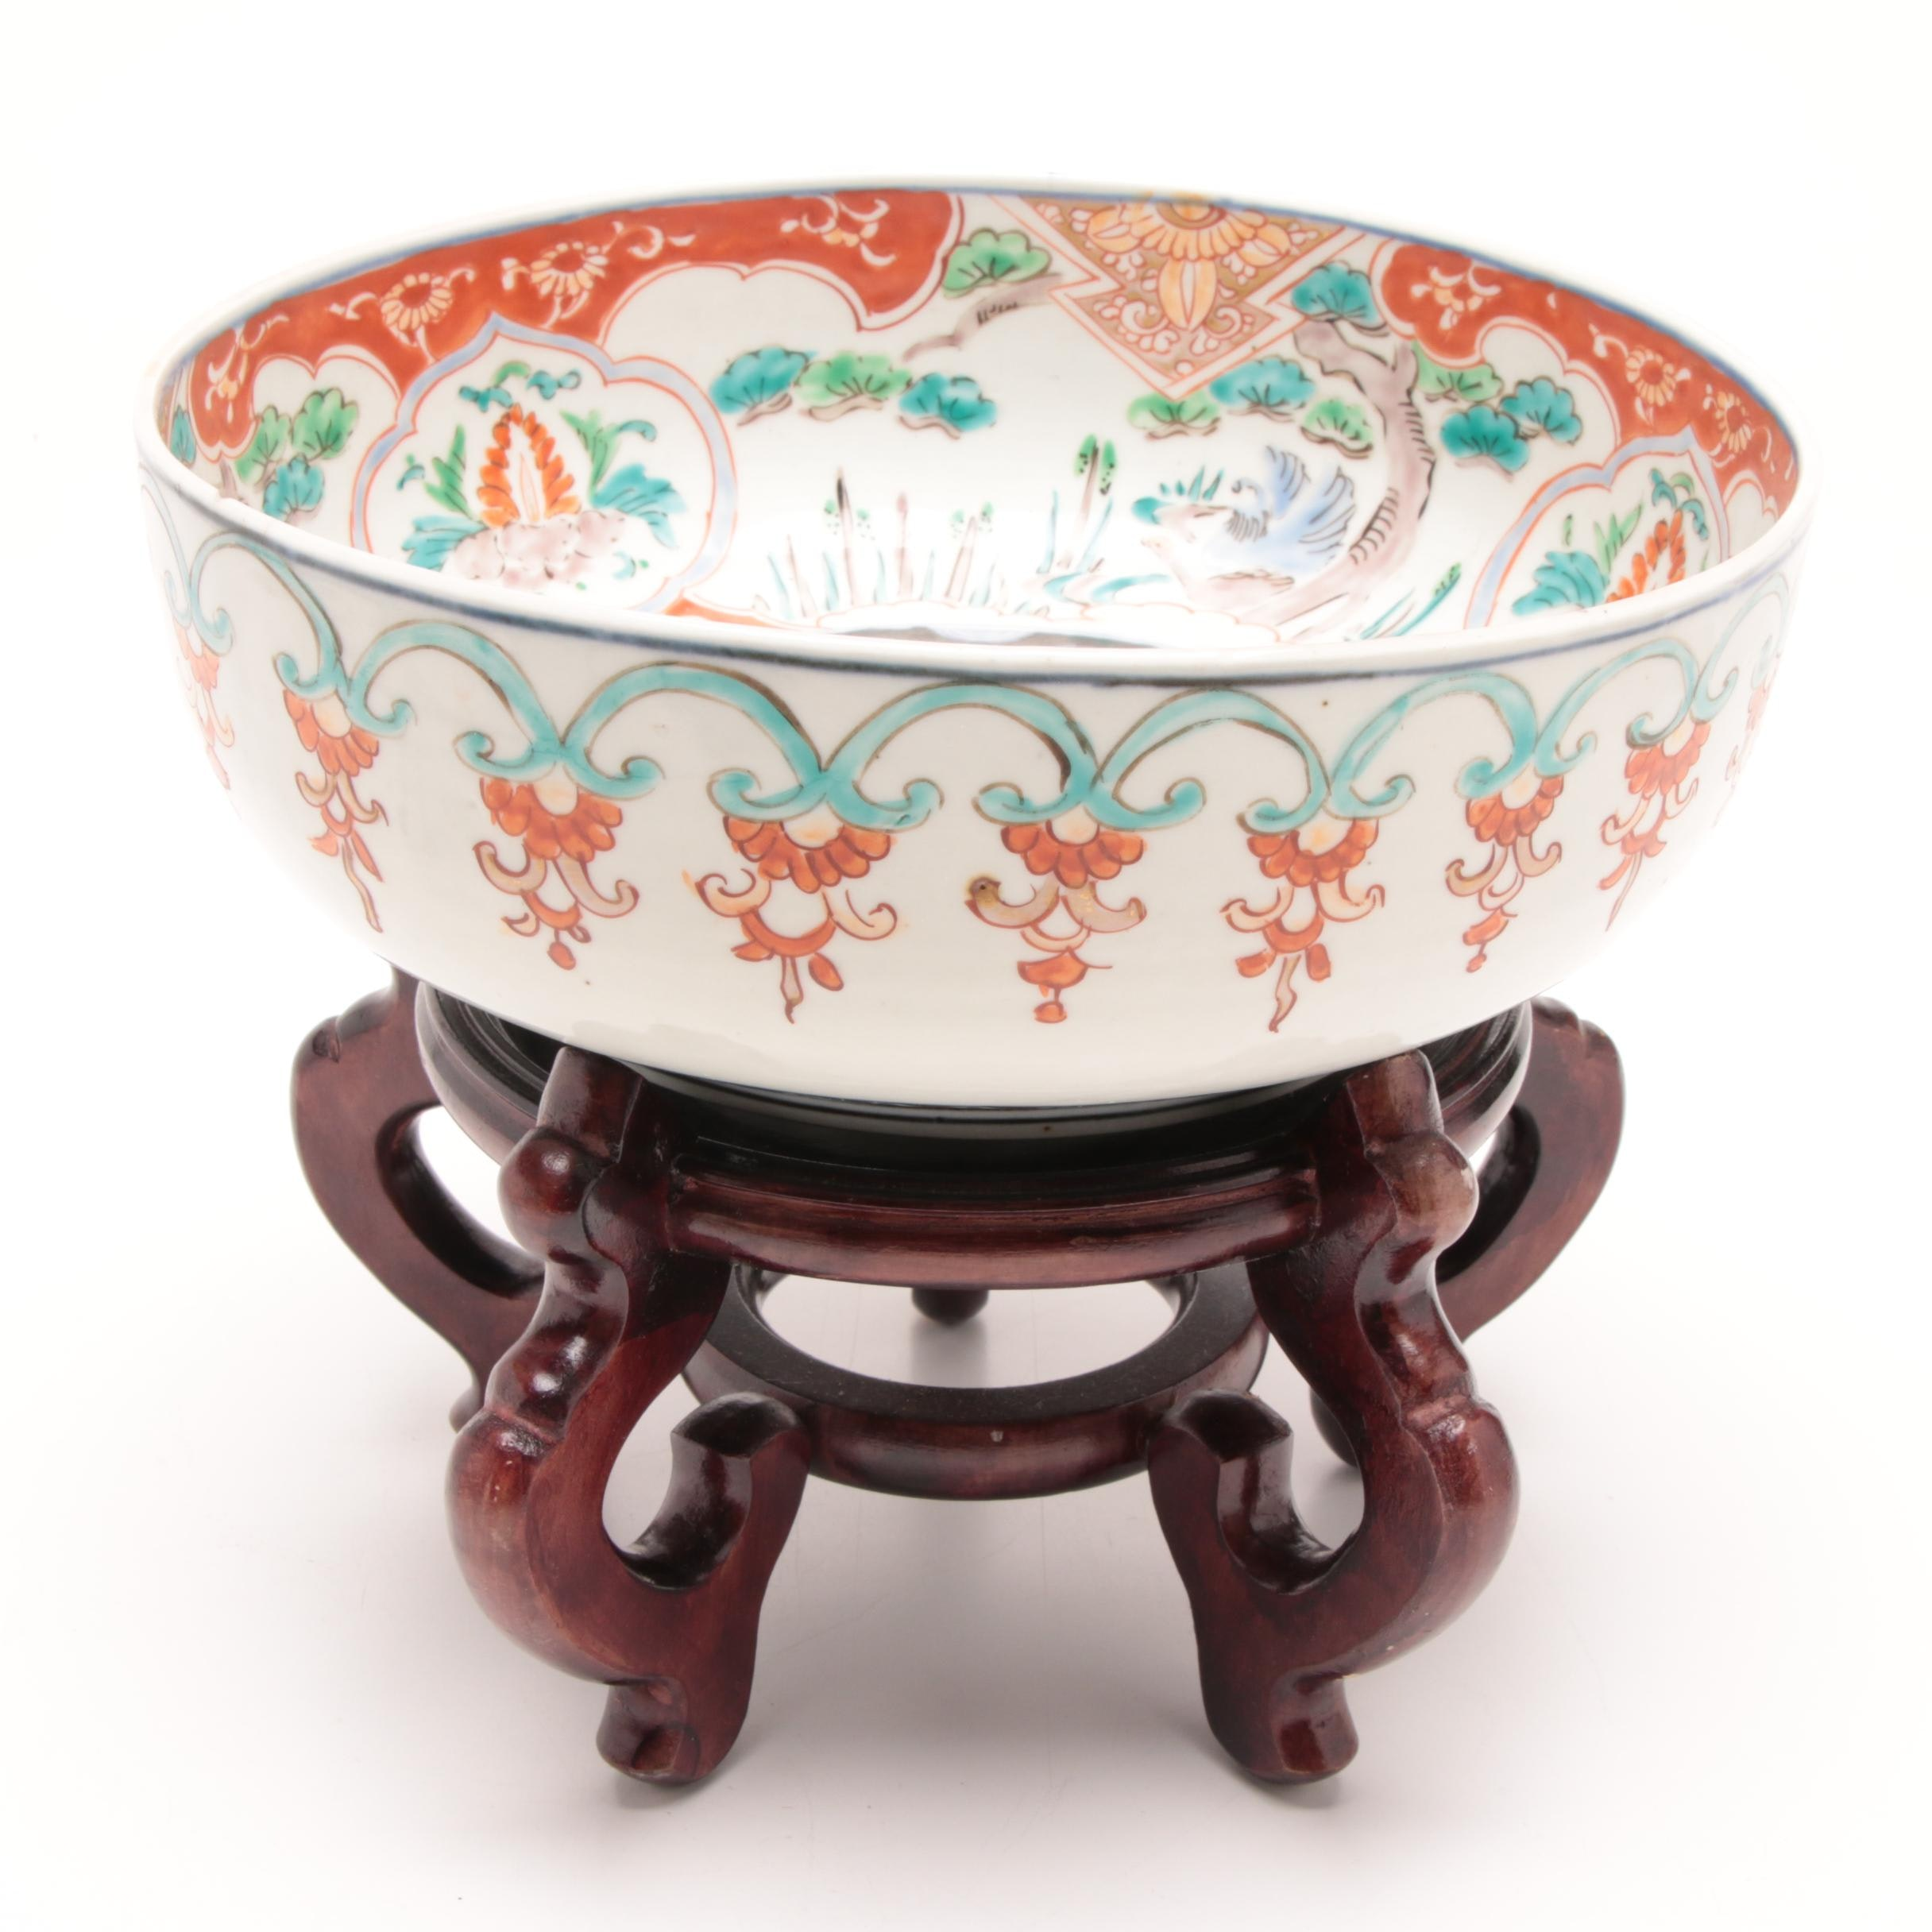 Antique Japanese Porcelain Bowl on Wooden Display Stand